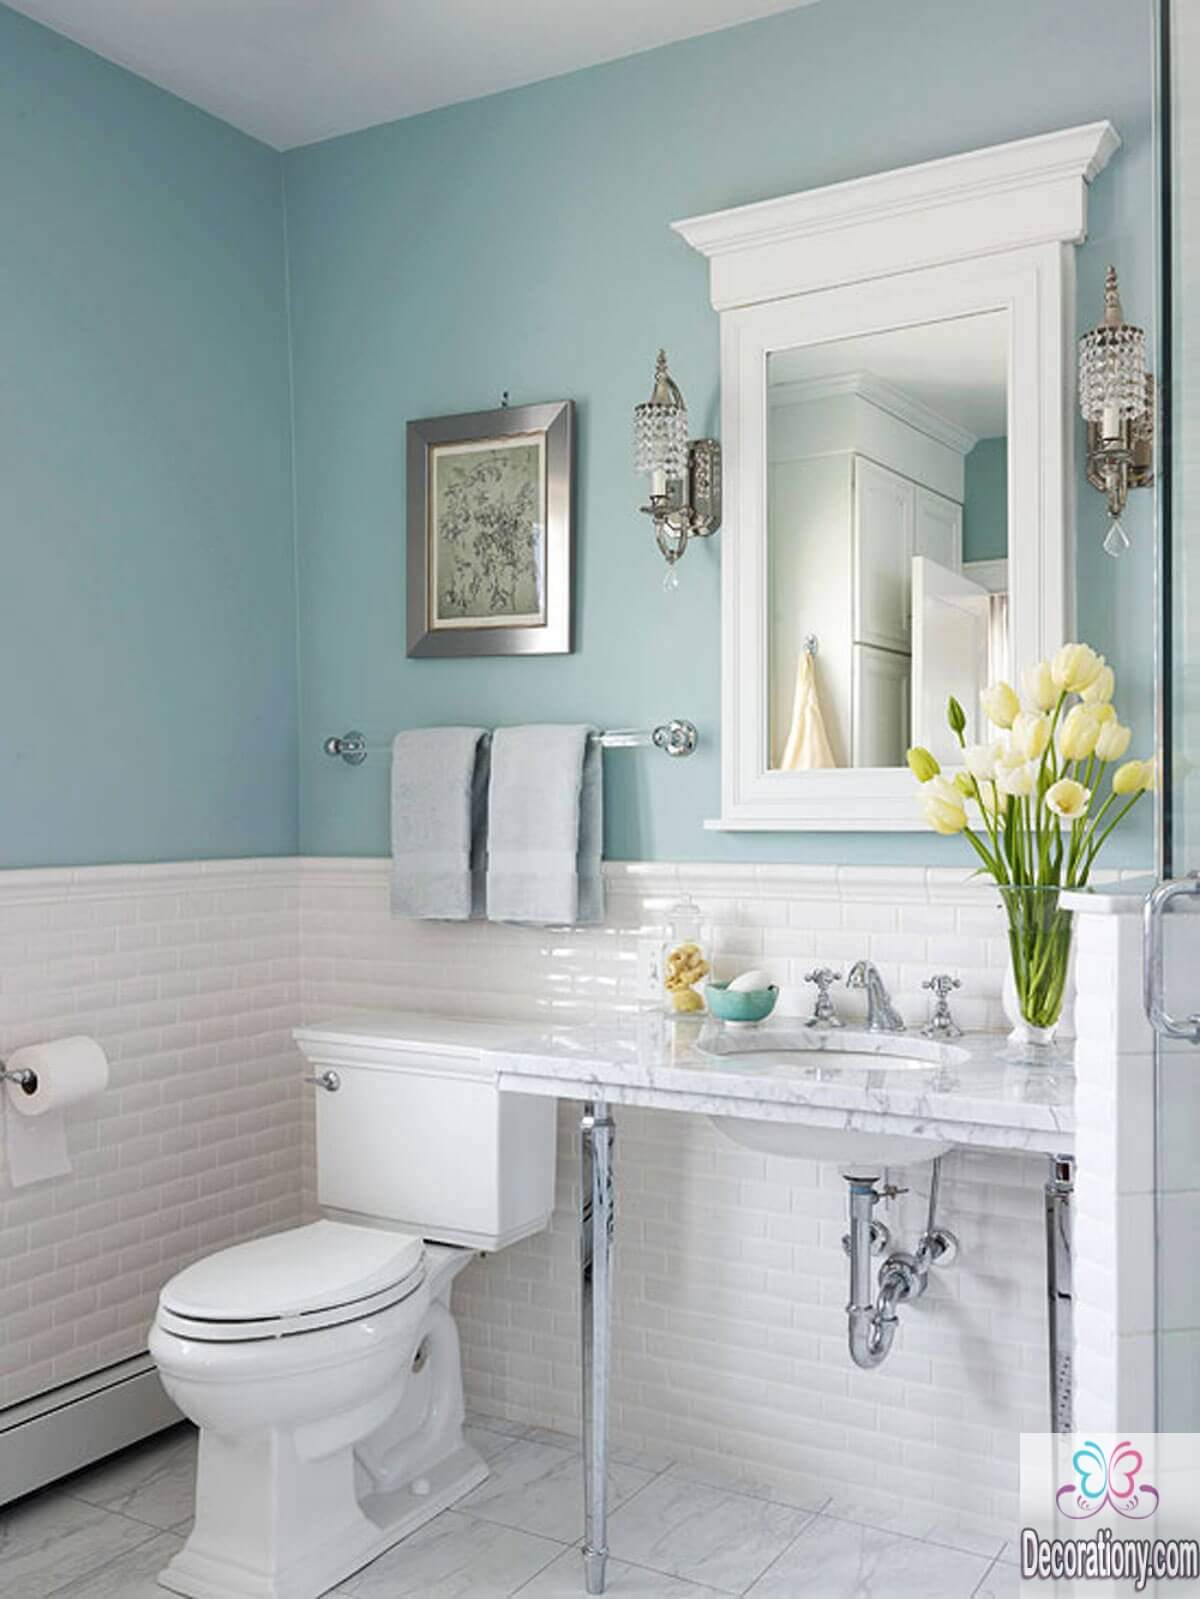 10 affordable colors for small bathrooms decoration y for Small bathroom ideas 20 of the best